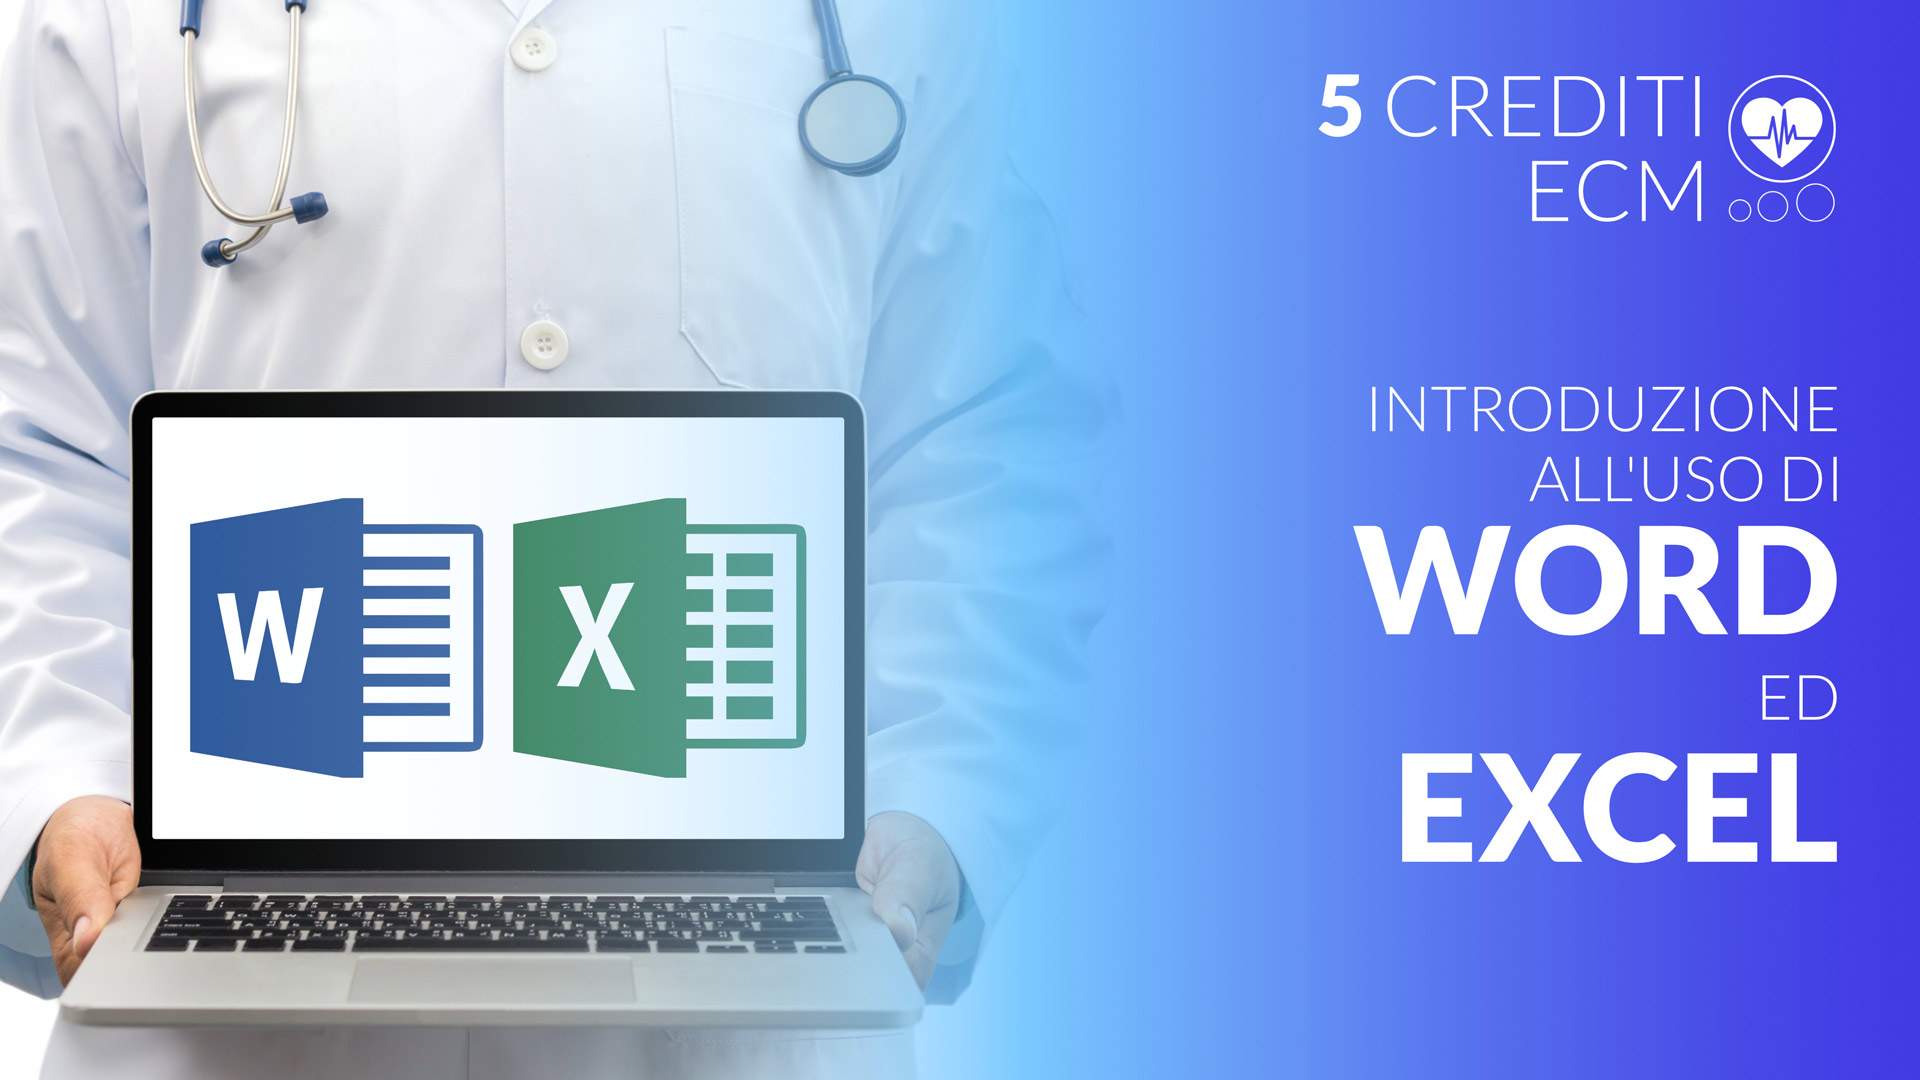 Introduzione all'uso di Word ed Excel